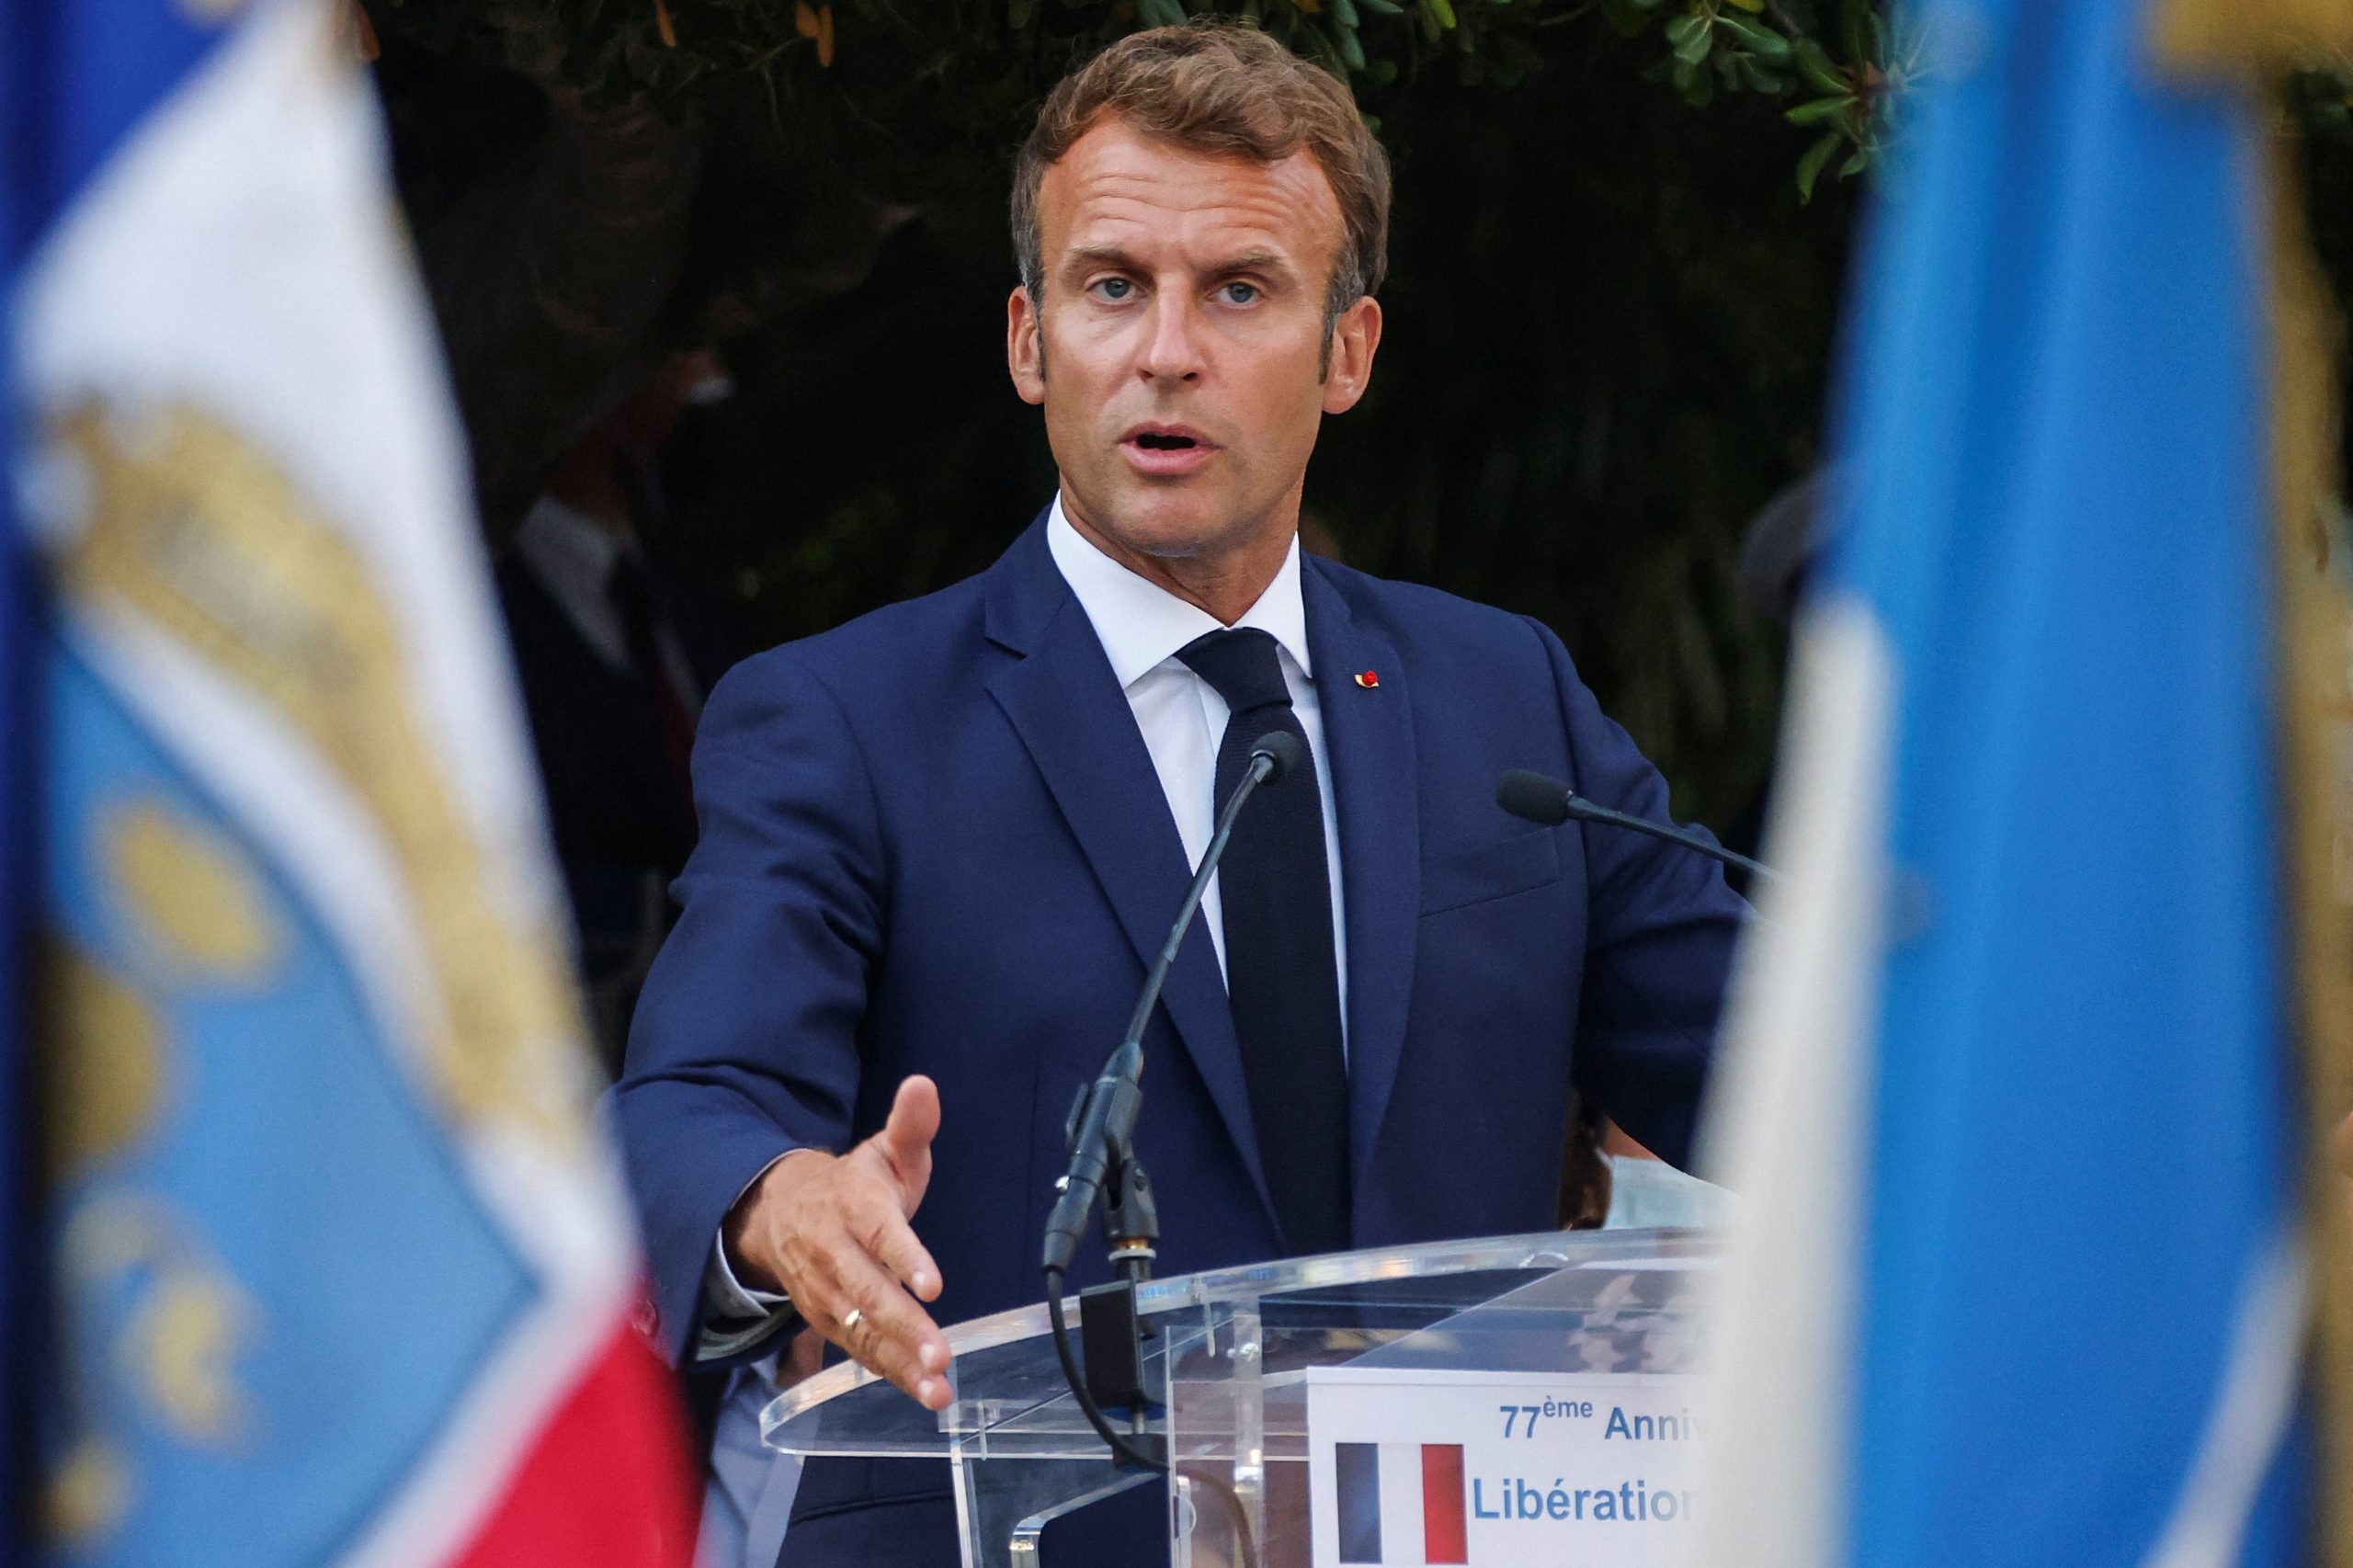 French President Emmanuel Macron delivers a speech on Tuesday. (Eric Gaillard/Pool/AFP via Getty Images)